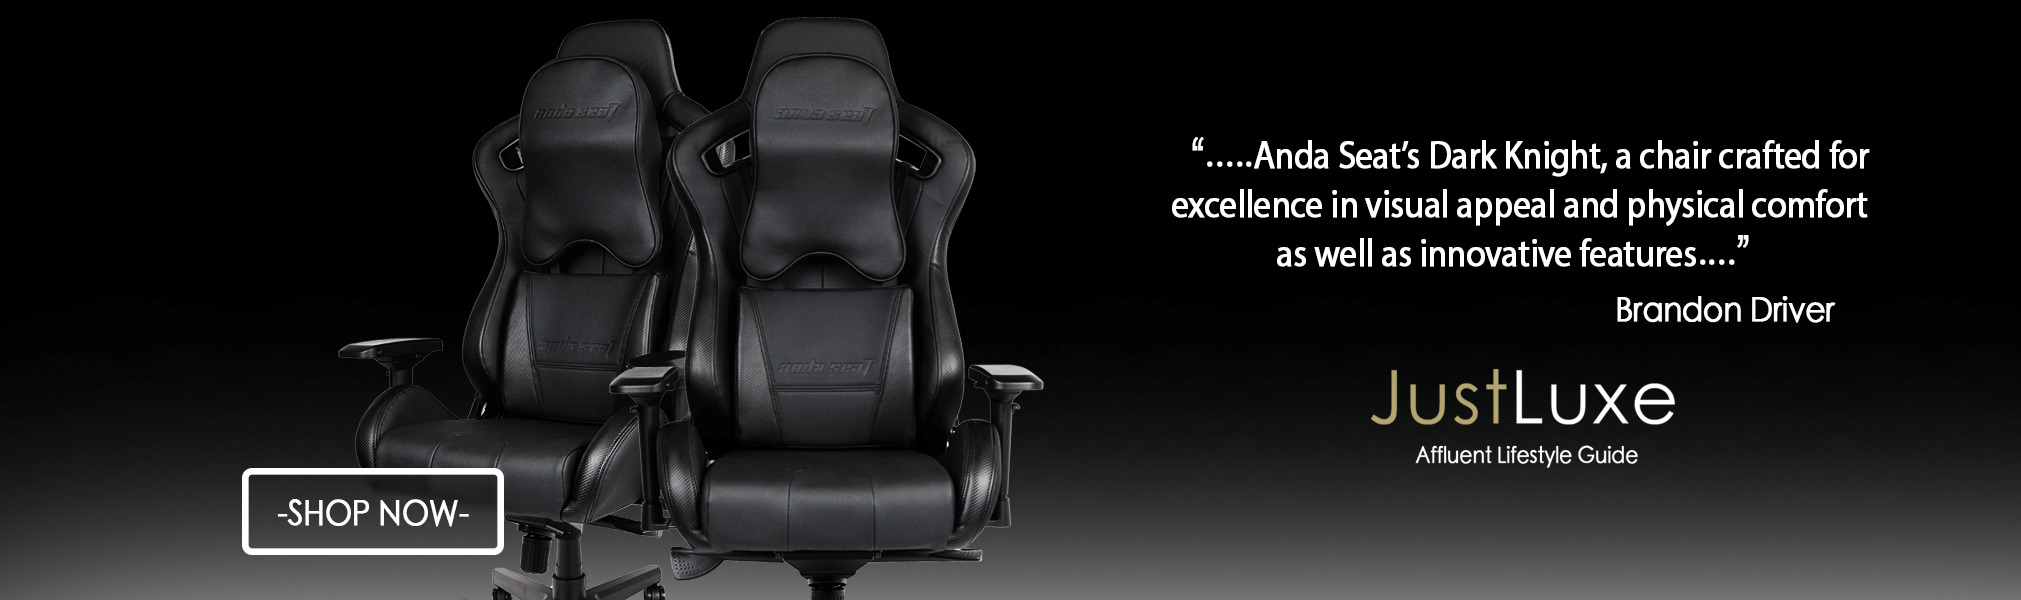 JustLuxe gaming chair review